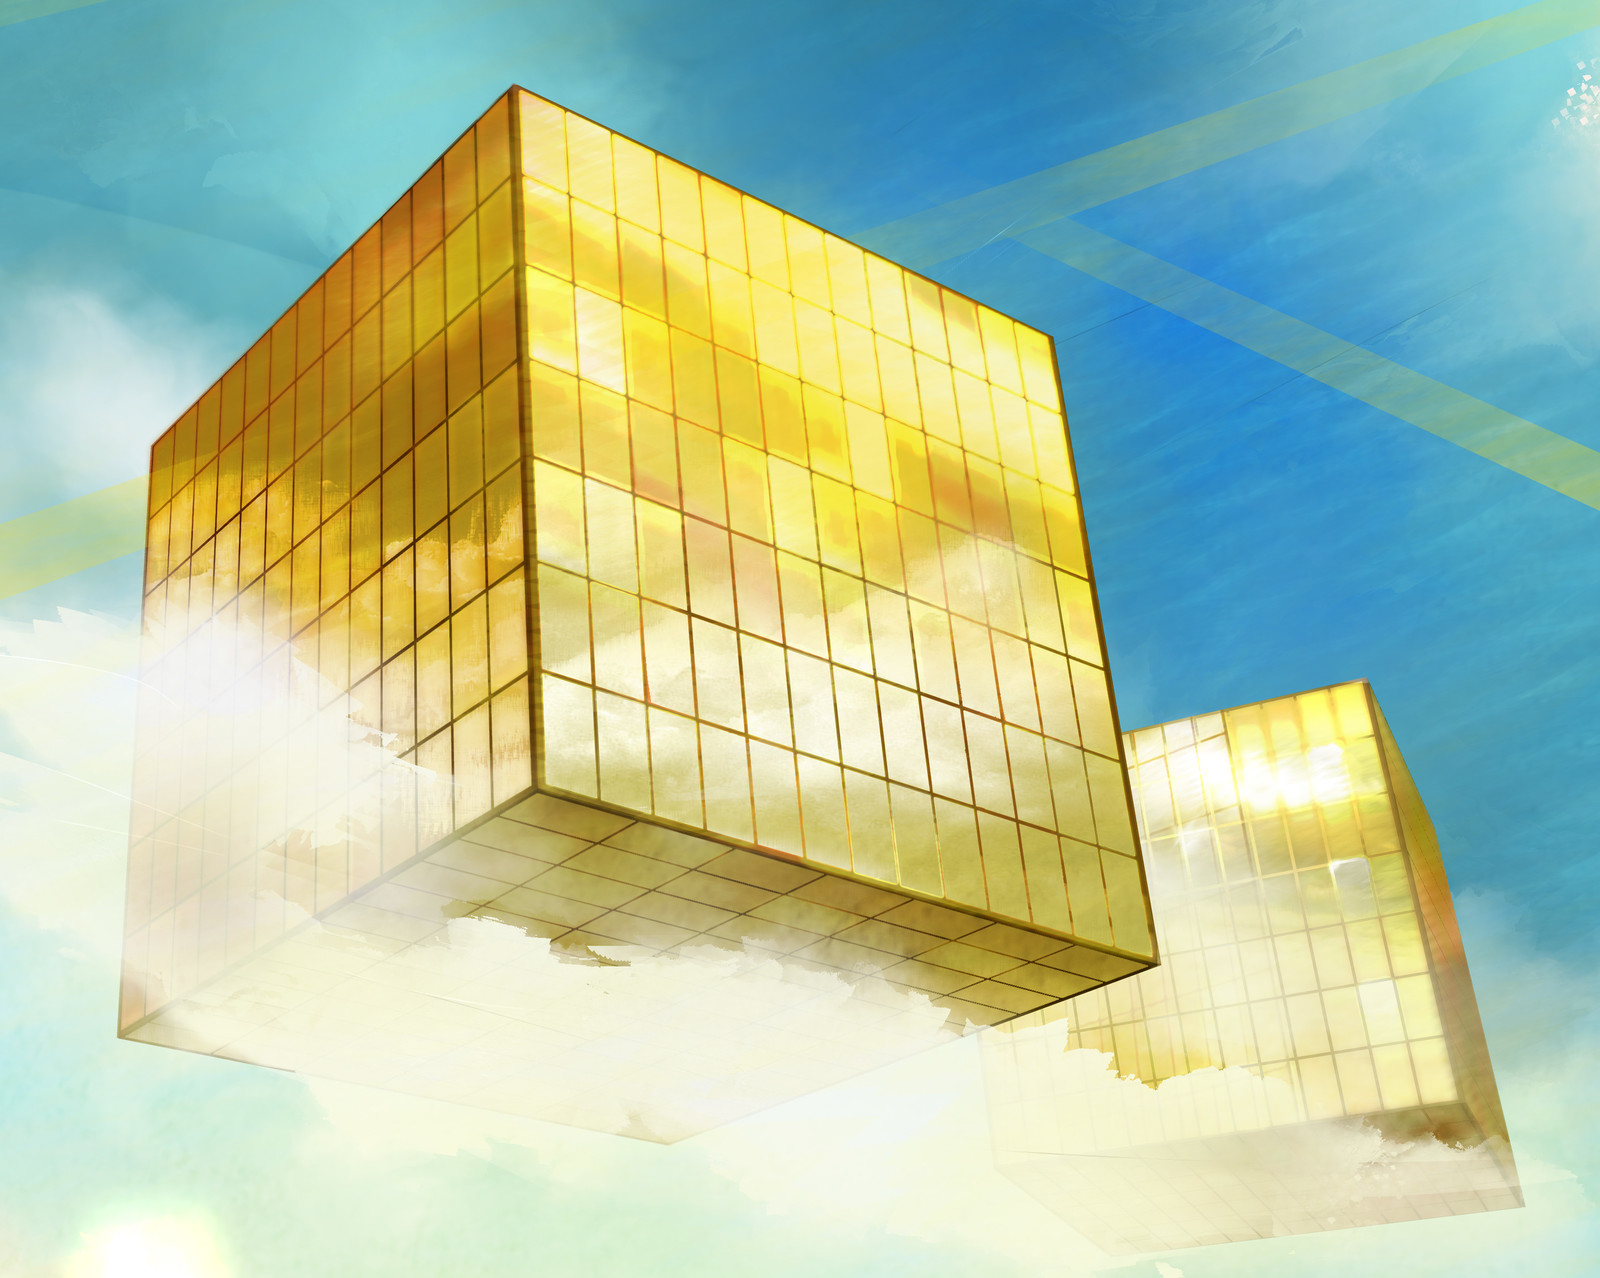 ~The Gold Towers that make dreams come true, or so they say~